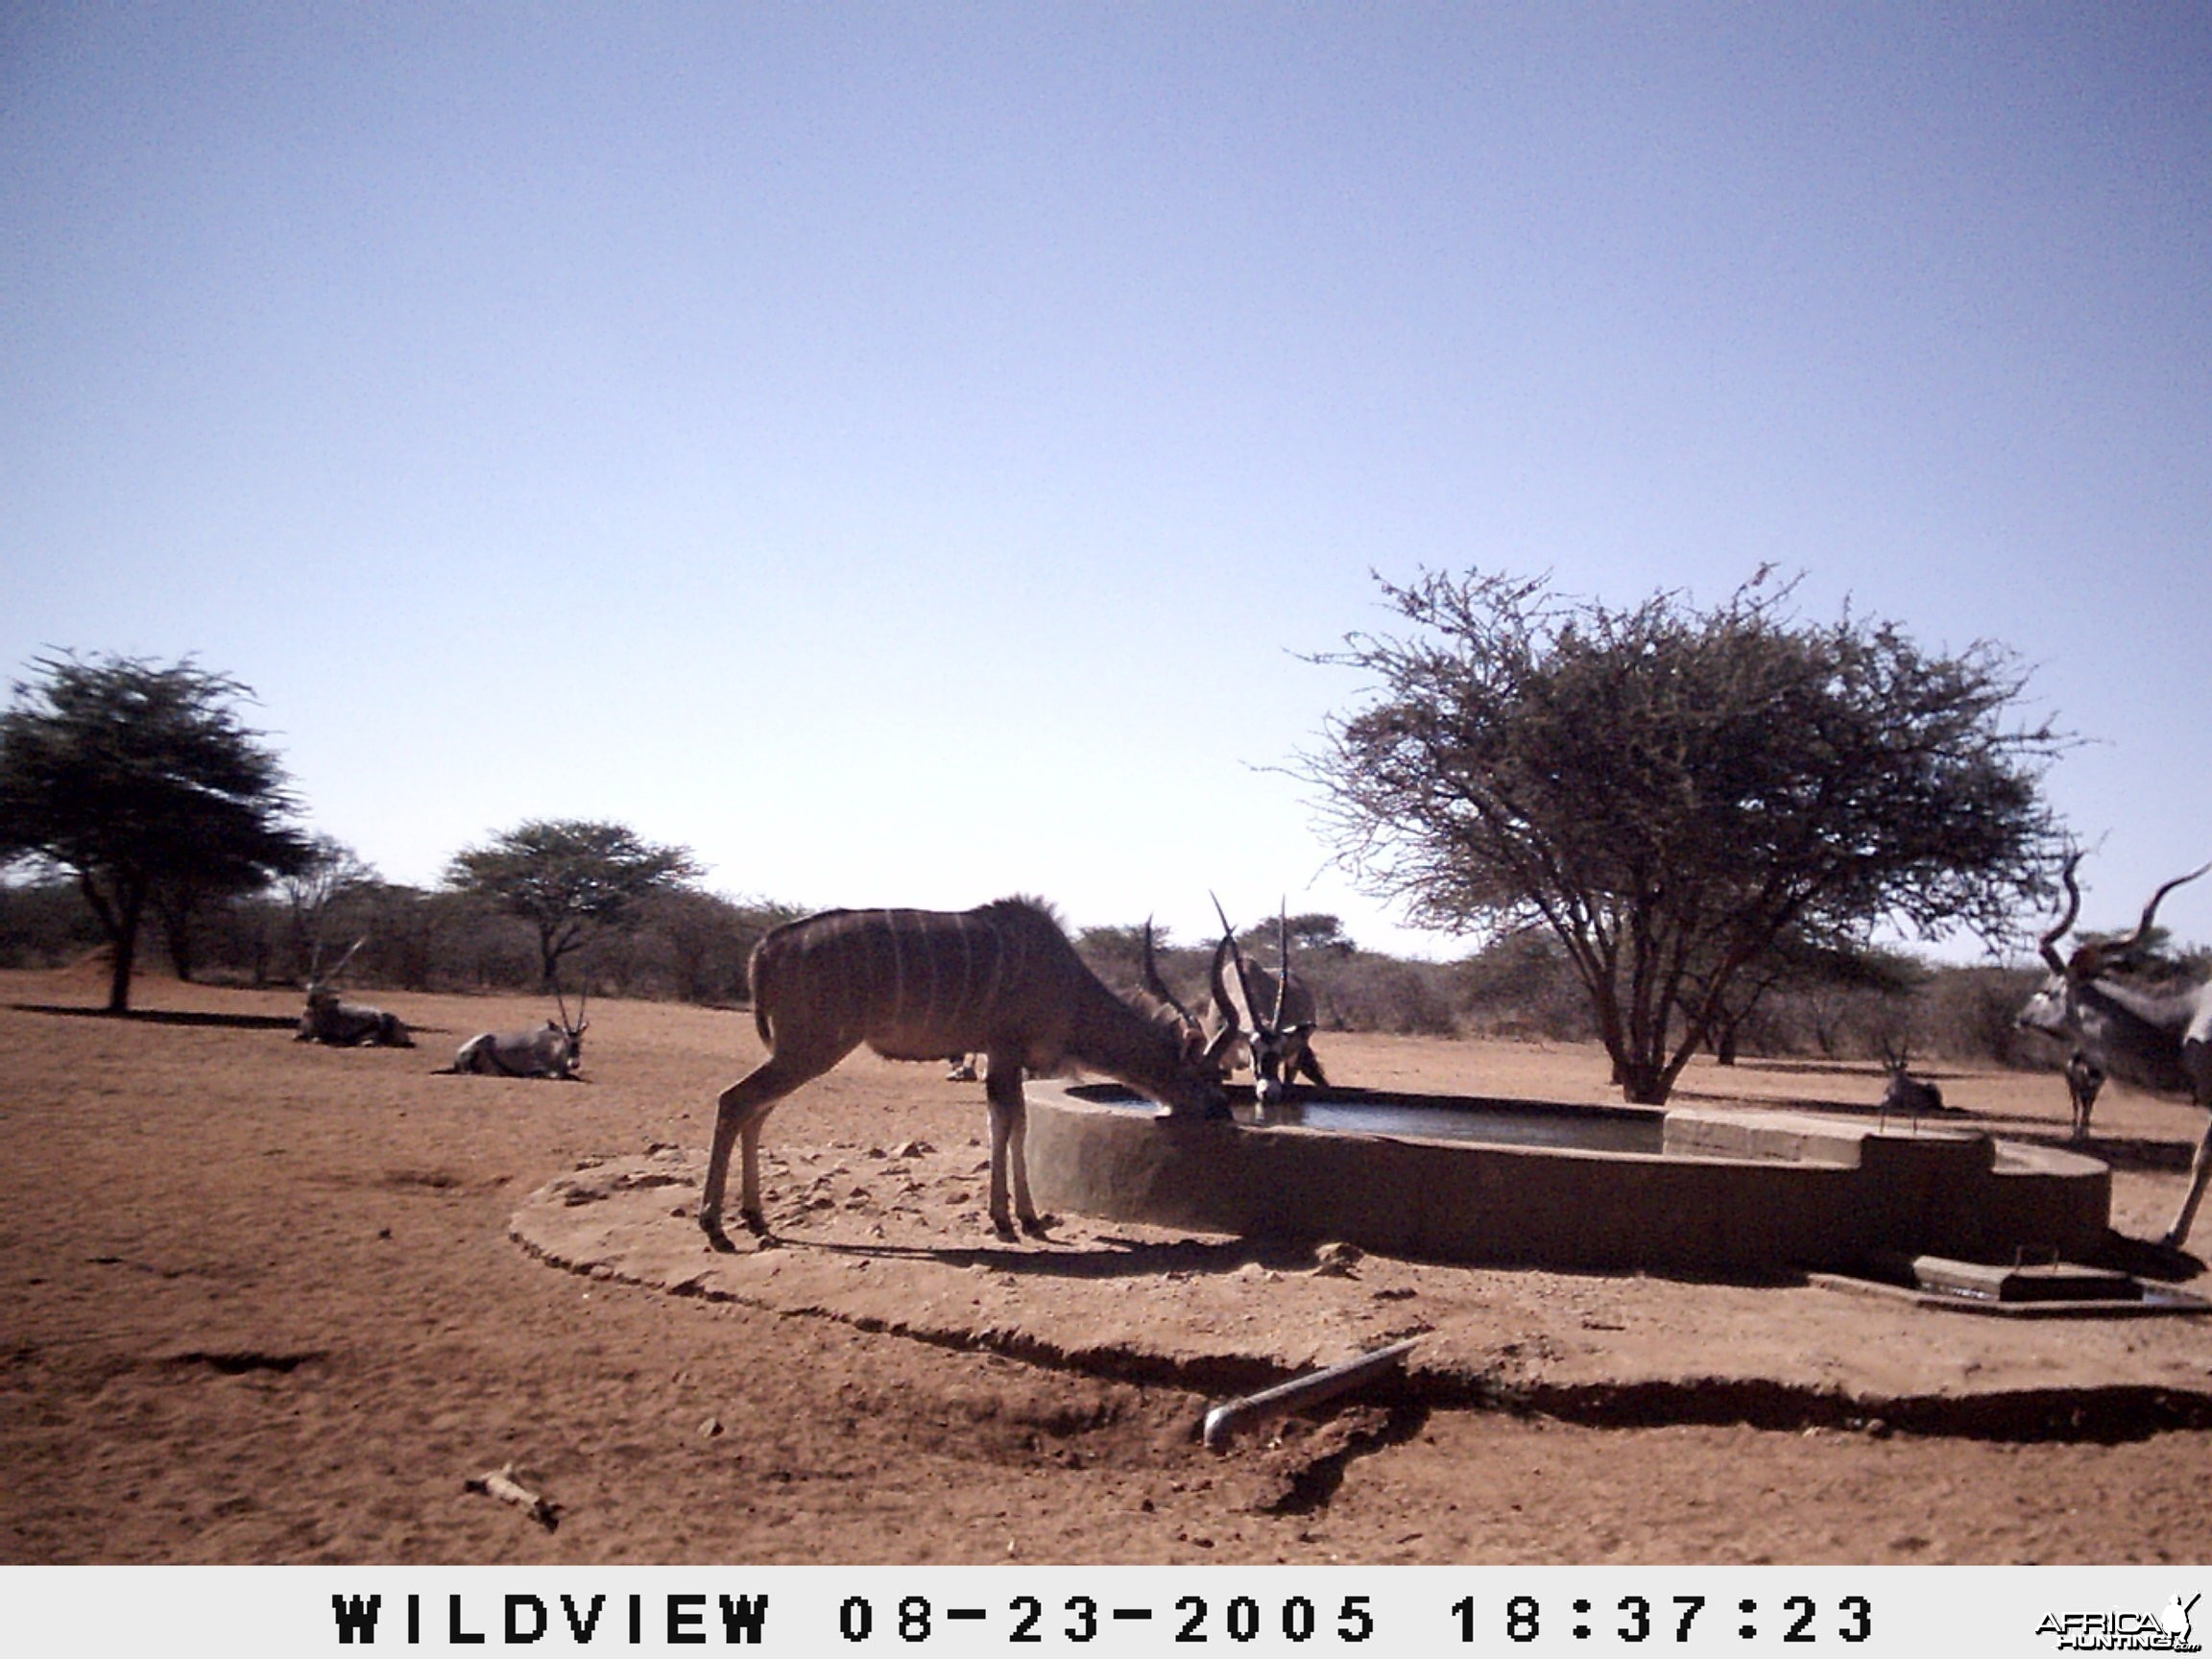 Gemsboks and Kudus, Namibia